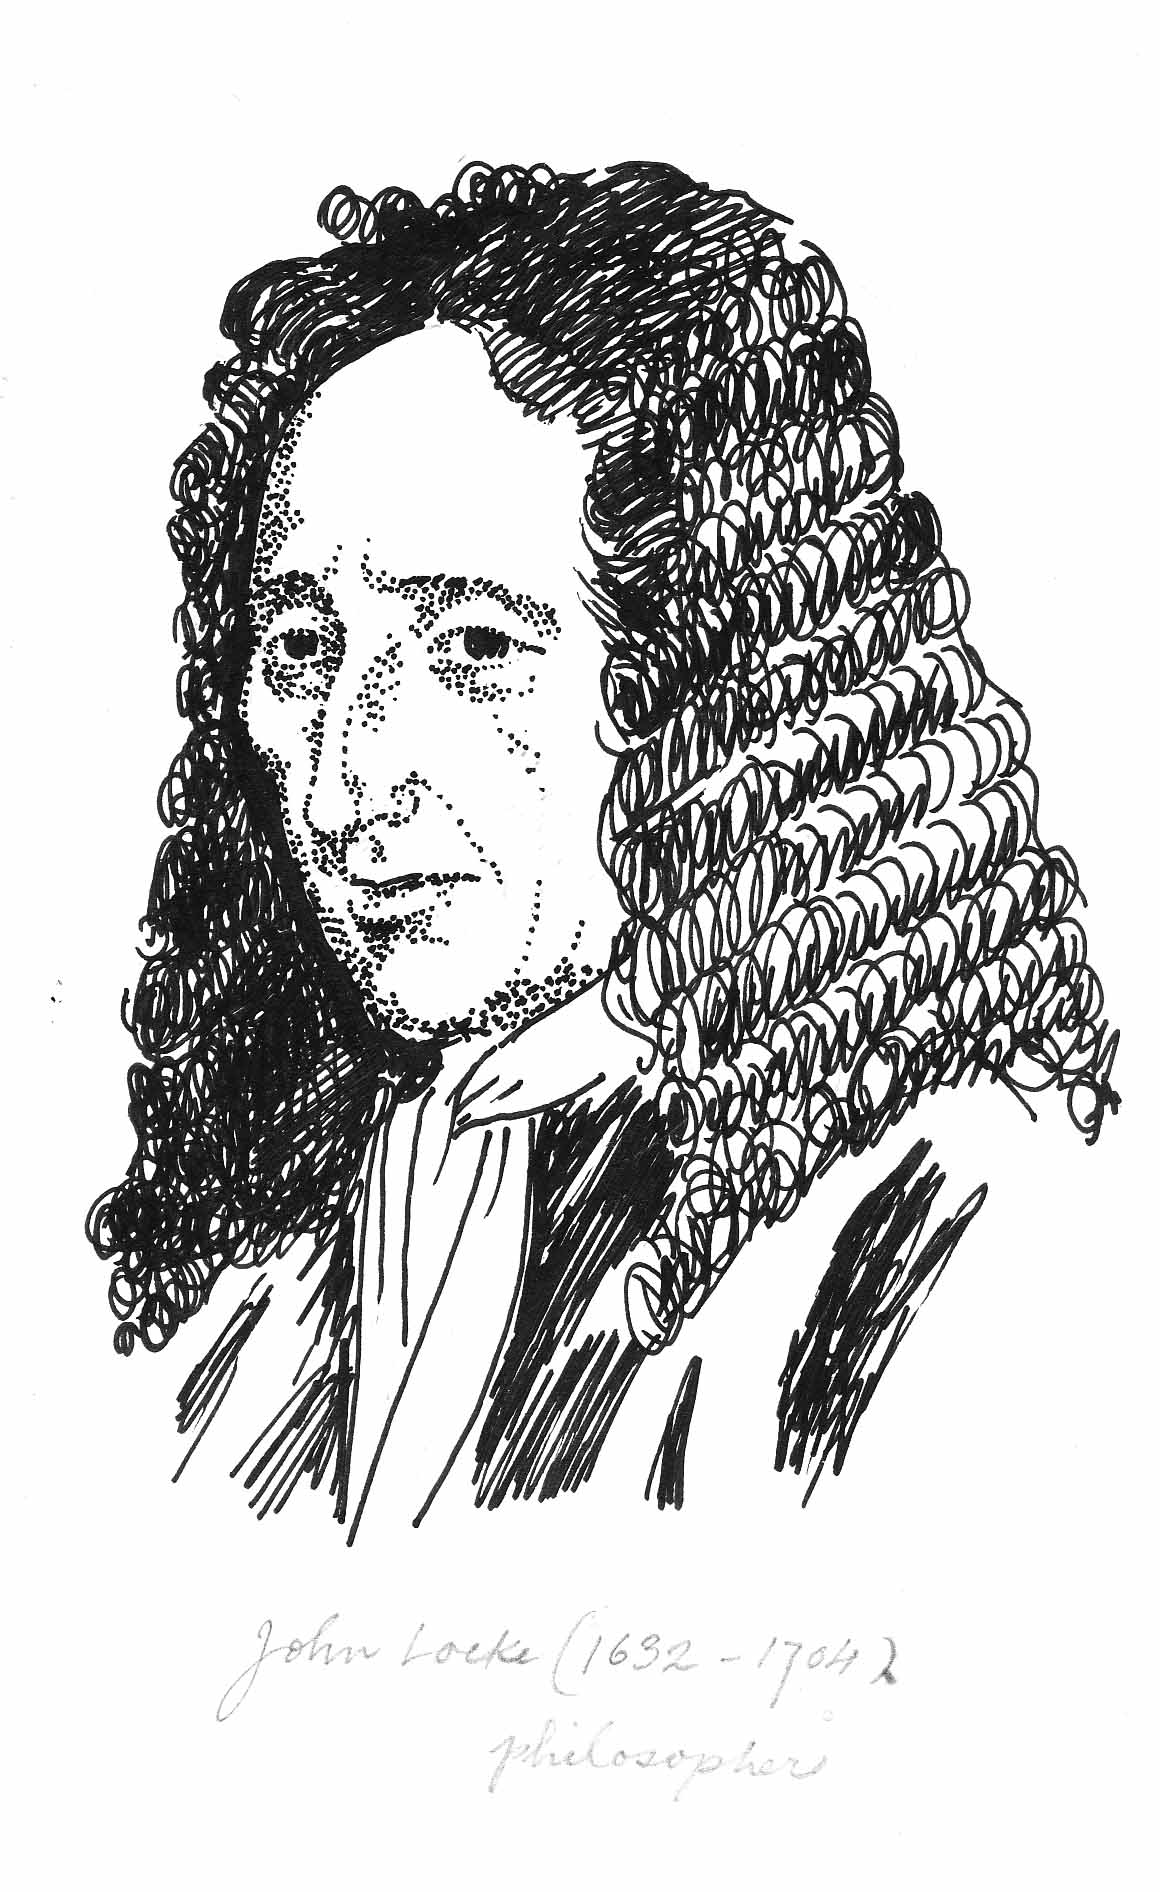 the philosophy of john locke essay A brief discussion of the life and works of john locke the fundamental principles of locke's philosophy are presented in an essay john w yolton, locke.